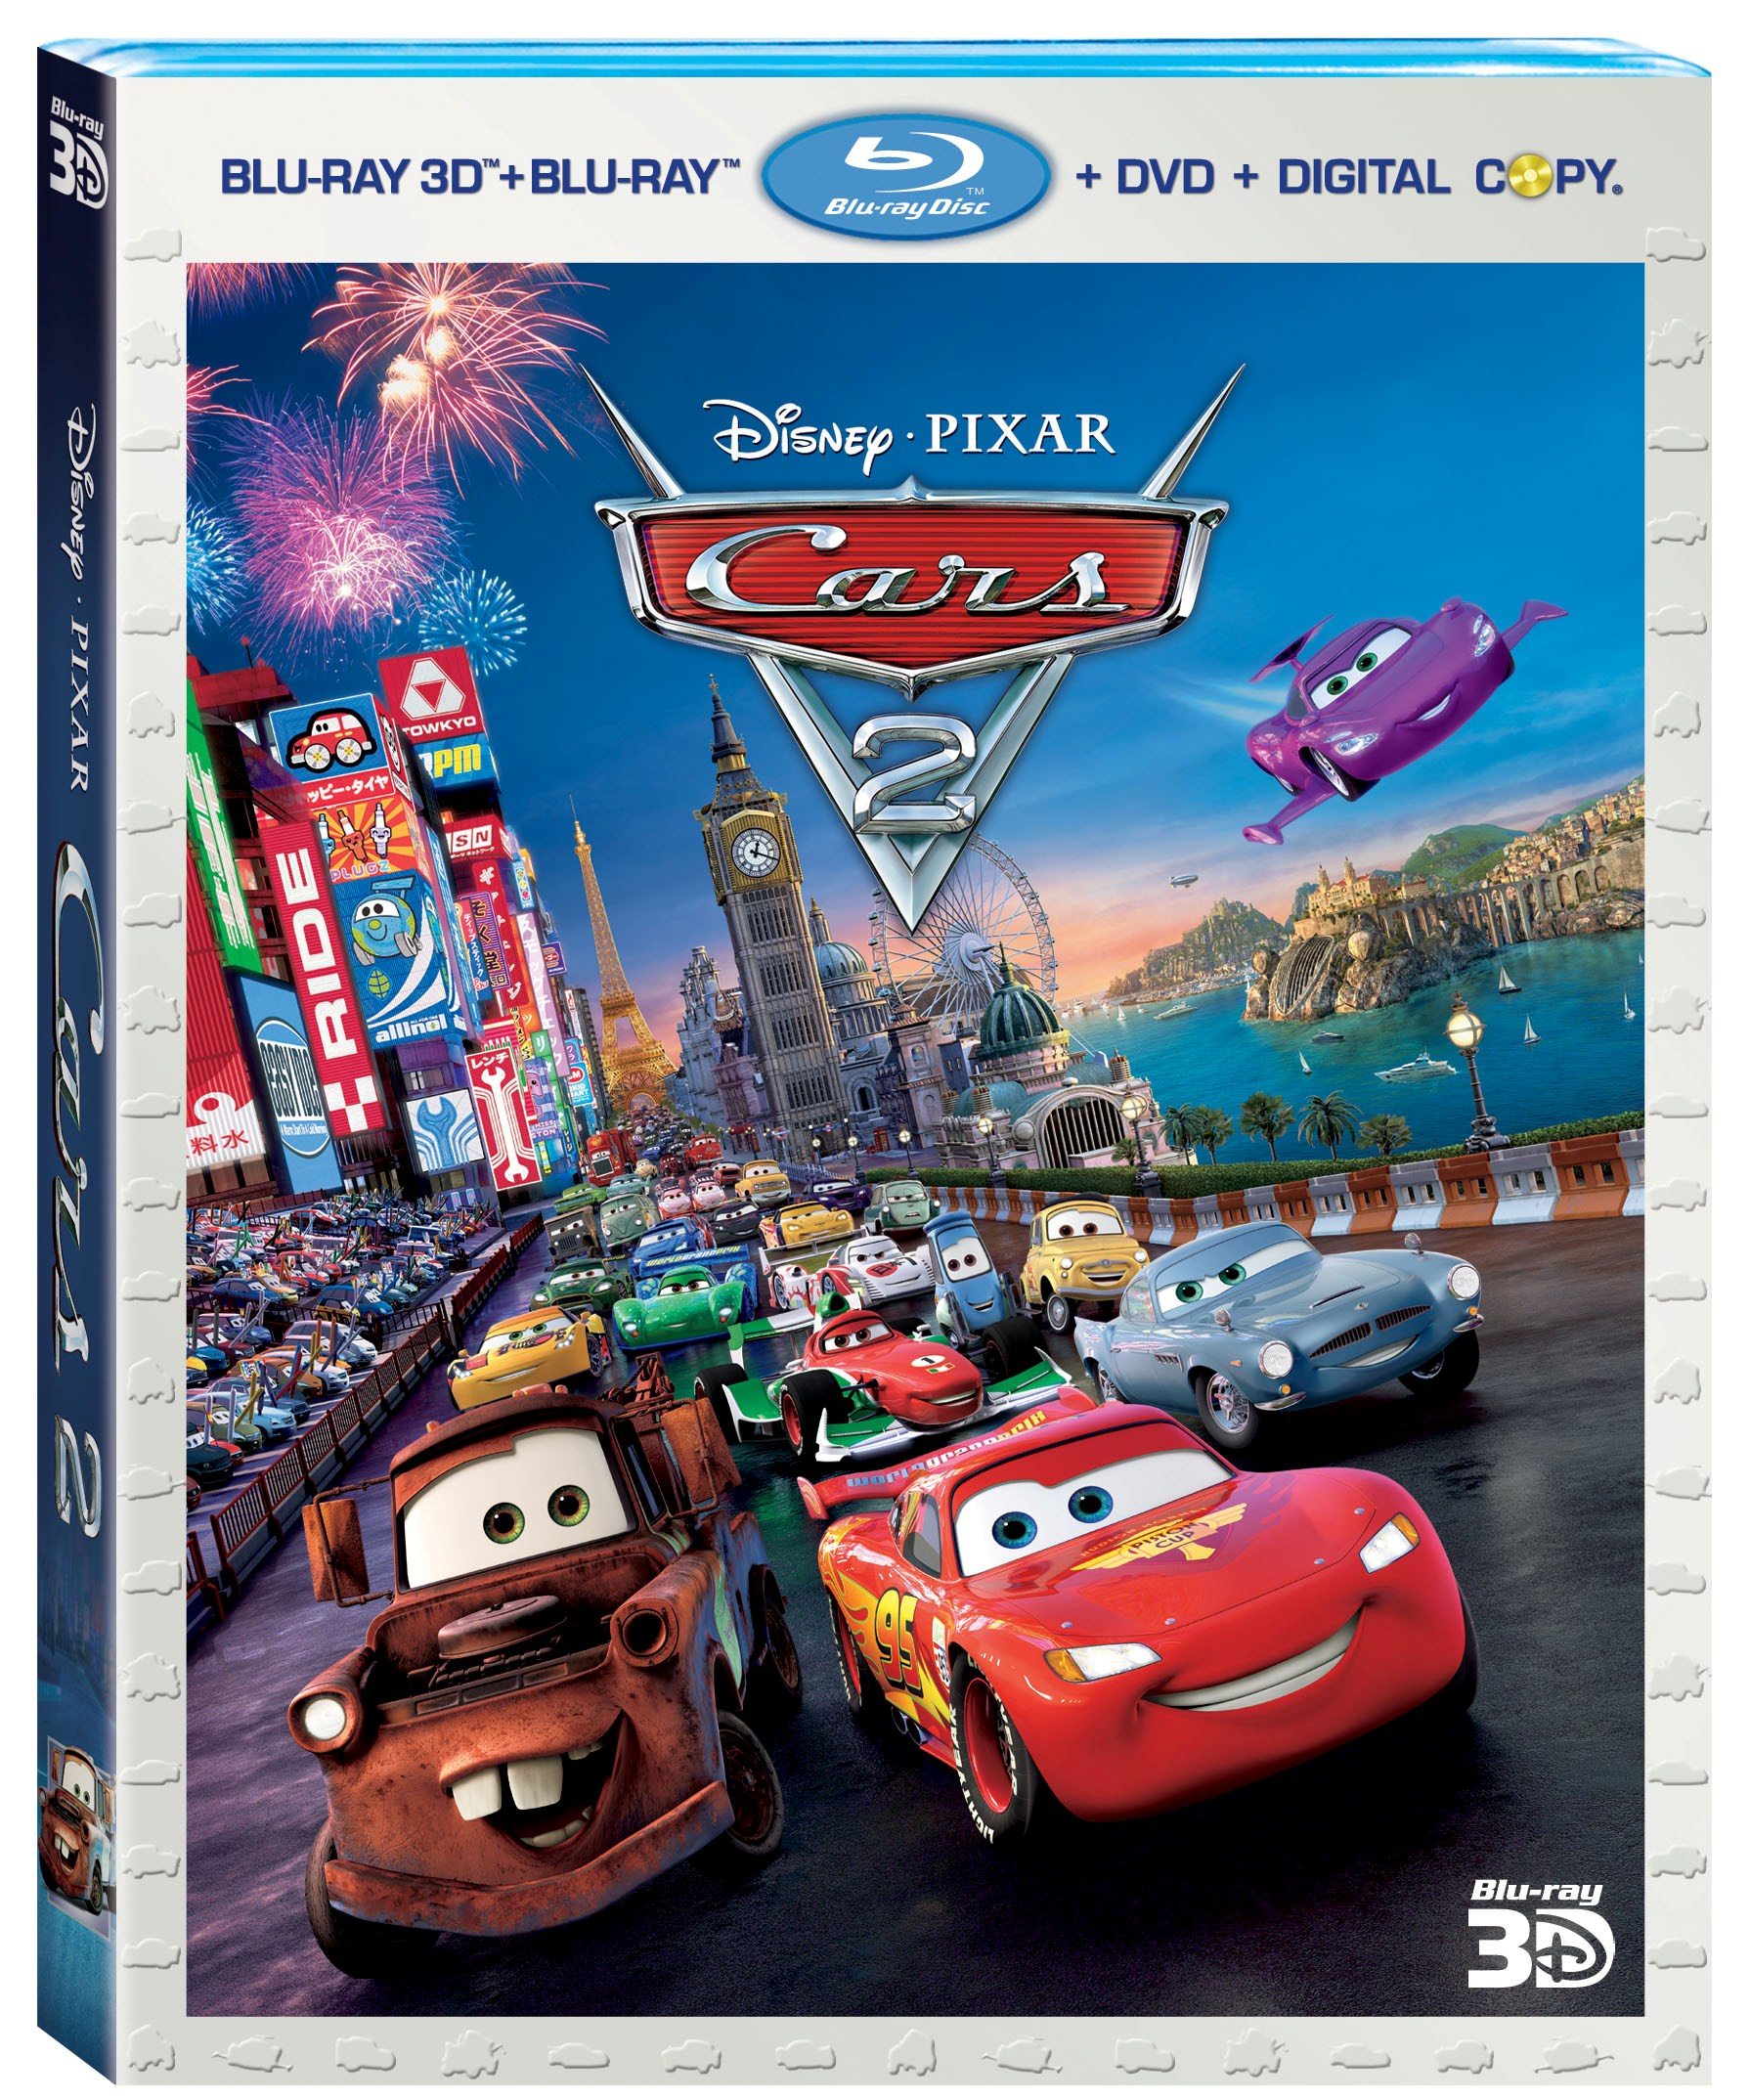 cars 2 to be released on november 1 2011 on blu ray combo pack blu ray 3d dvd movie download. Black Bedroom Furniture Sets. Home Design Ideas